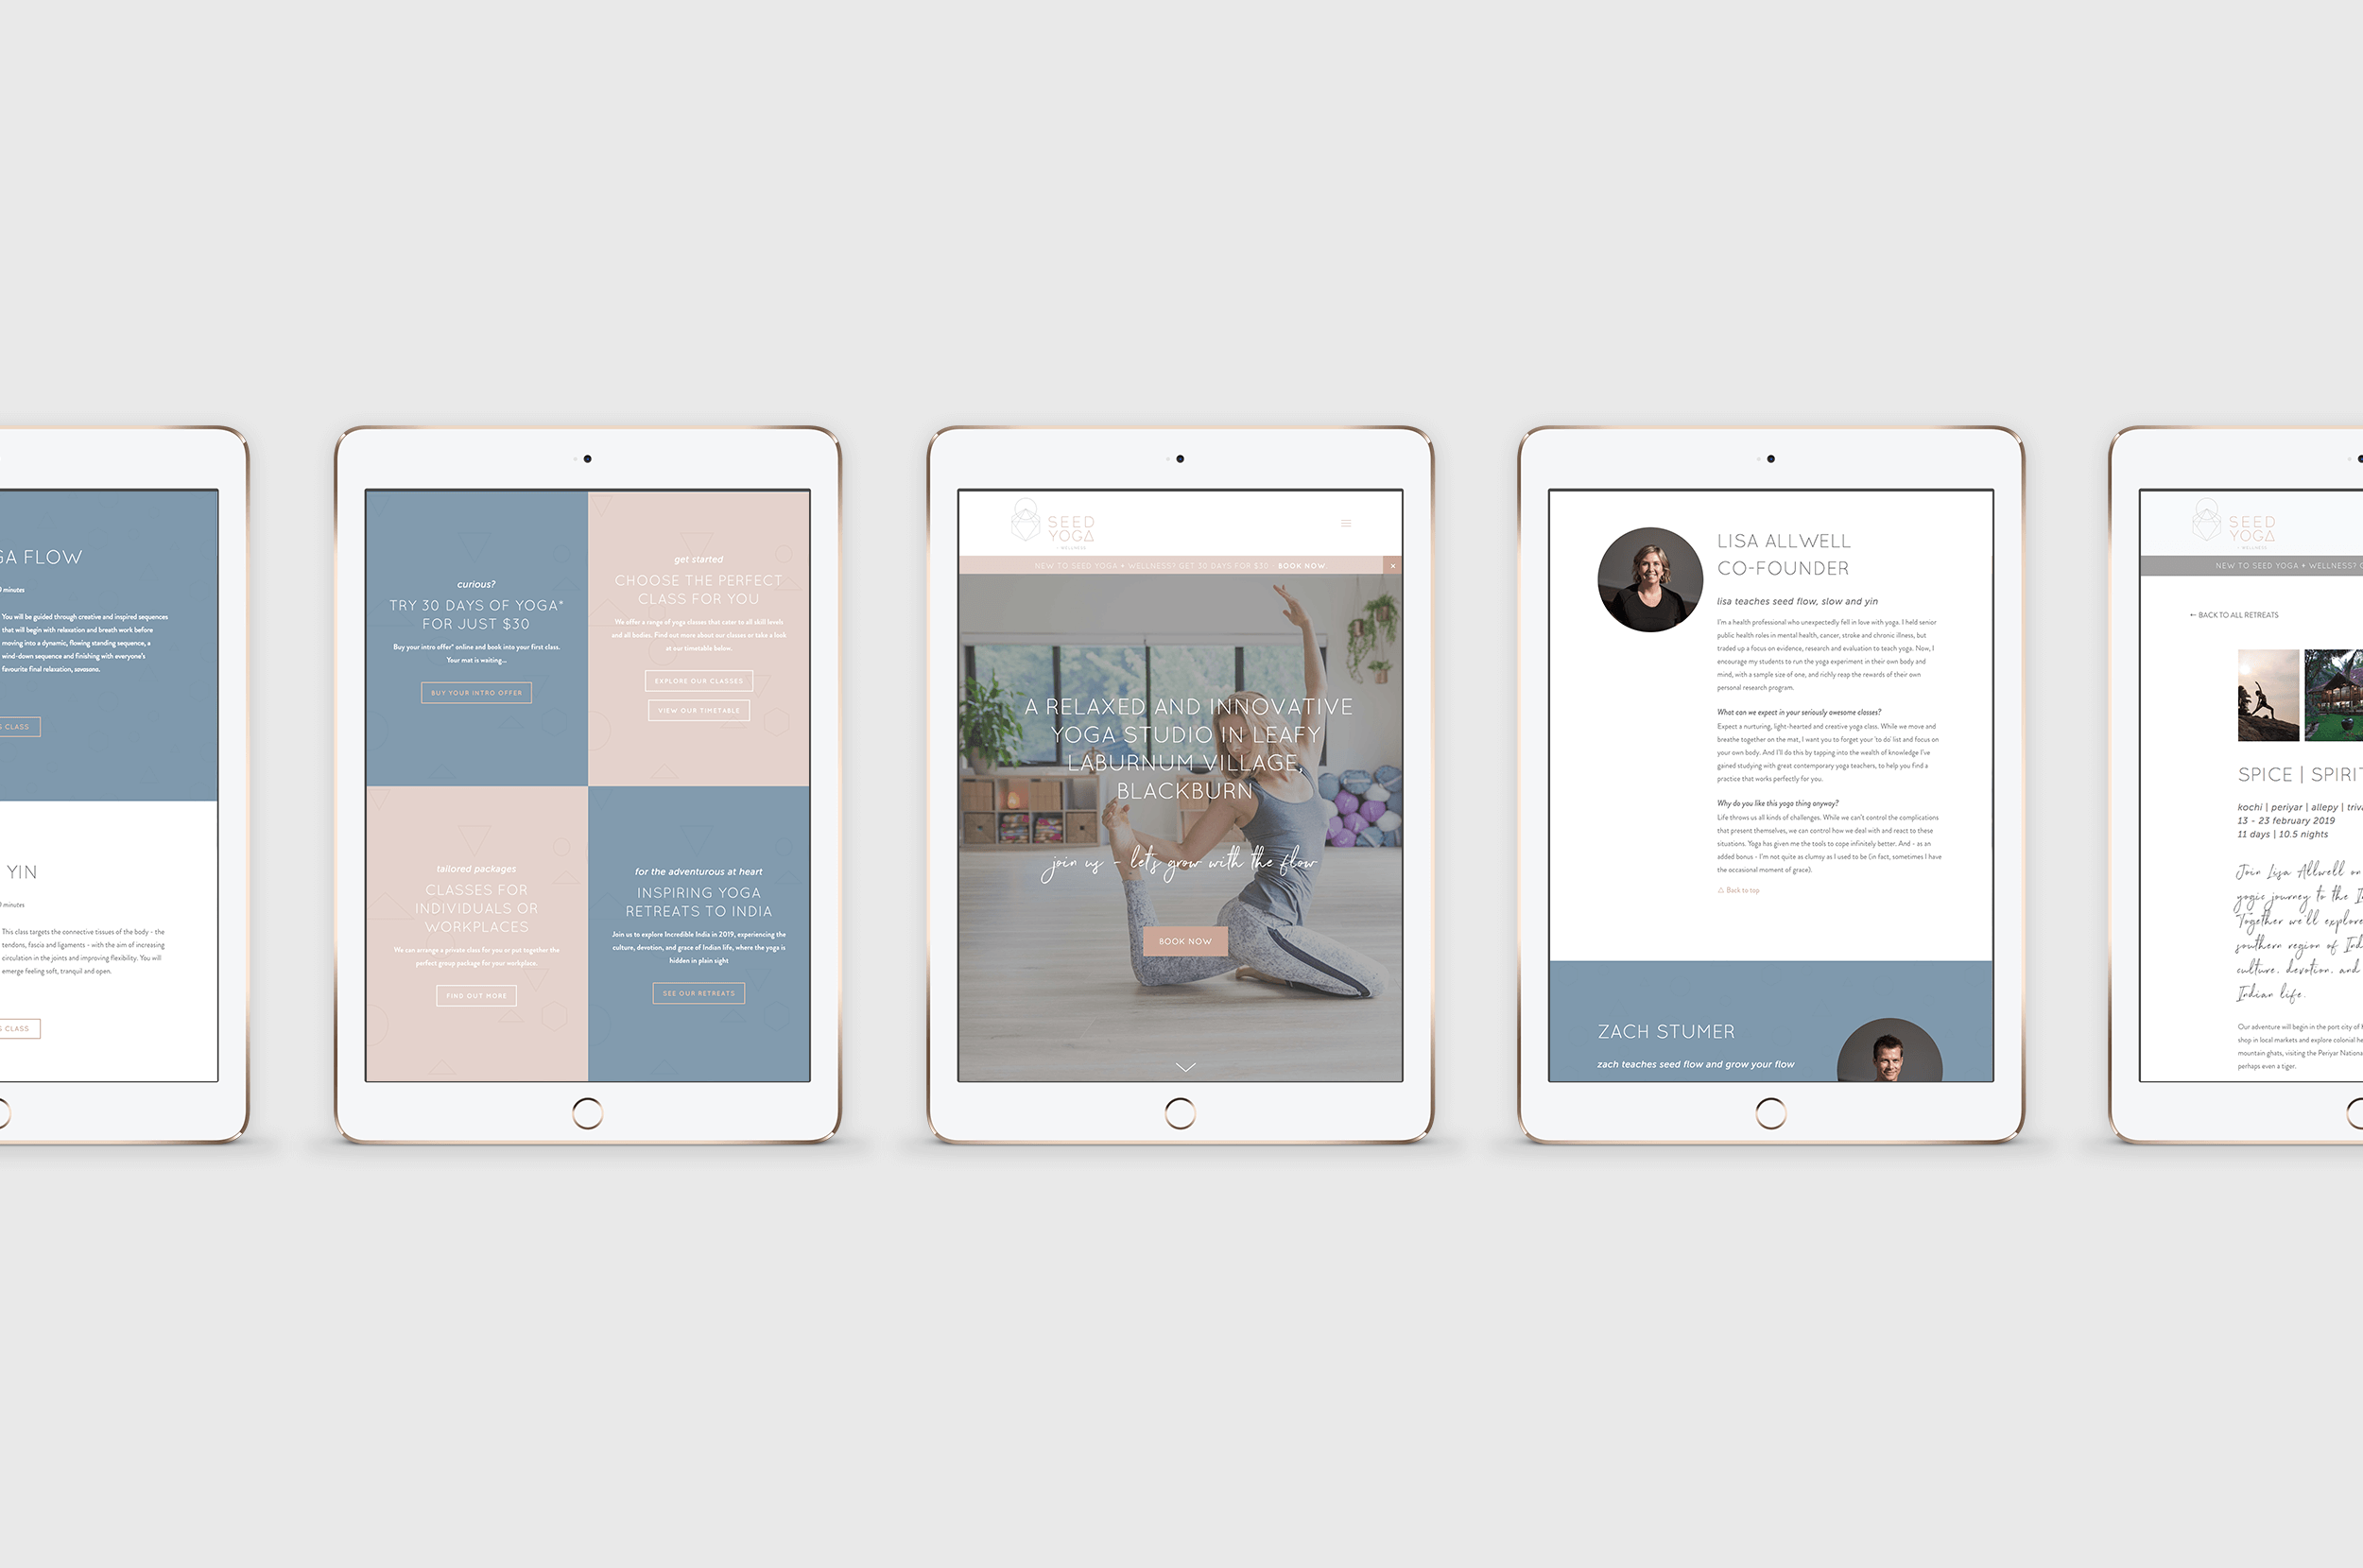 seed-yoga-wellness-responsive-squarespace-website-design.png